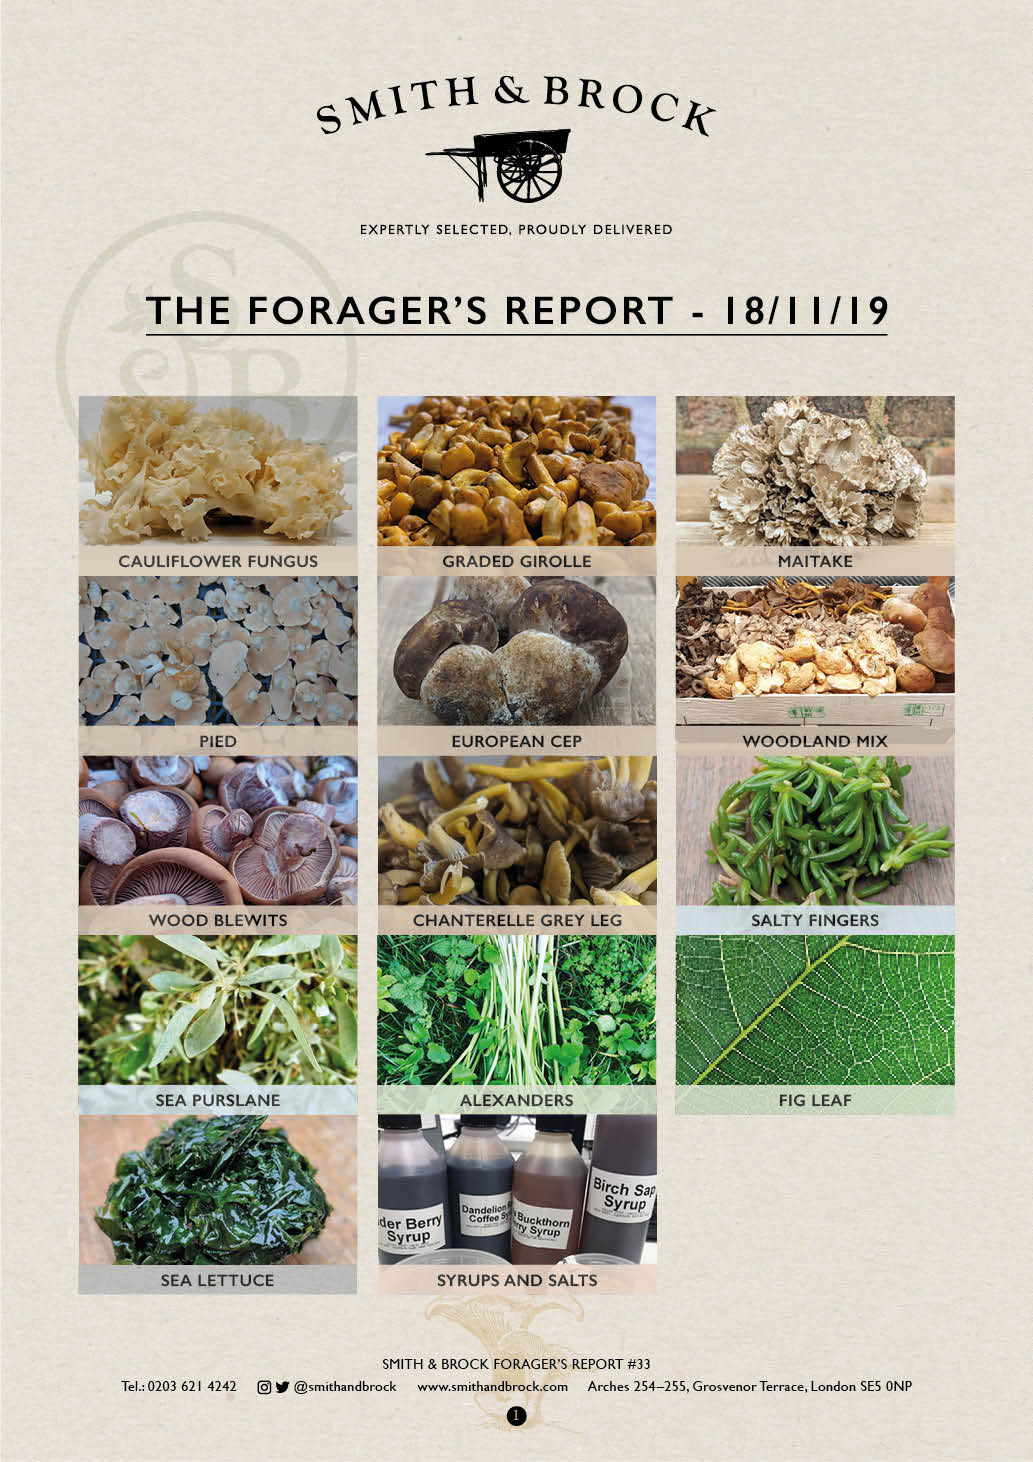 Smith&Brock Foraged Products Report 18 Nov 2019 33